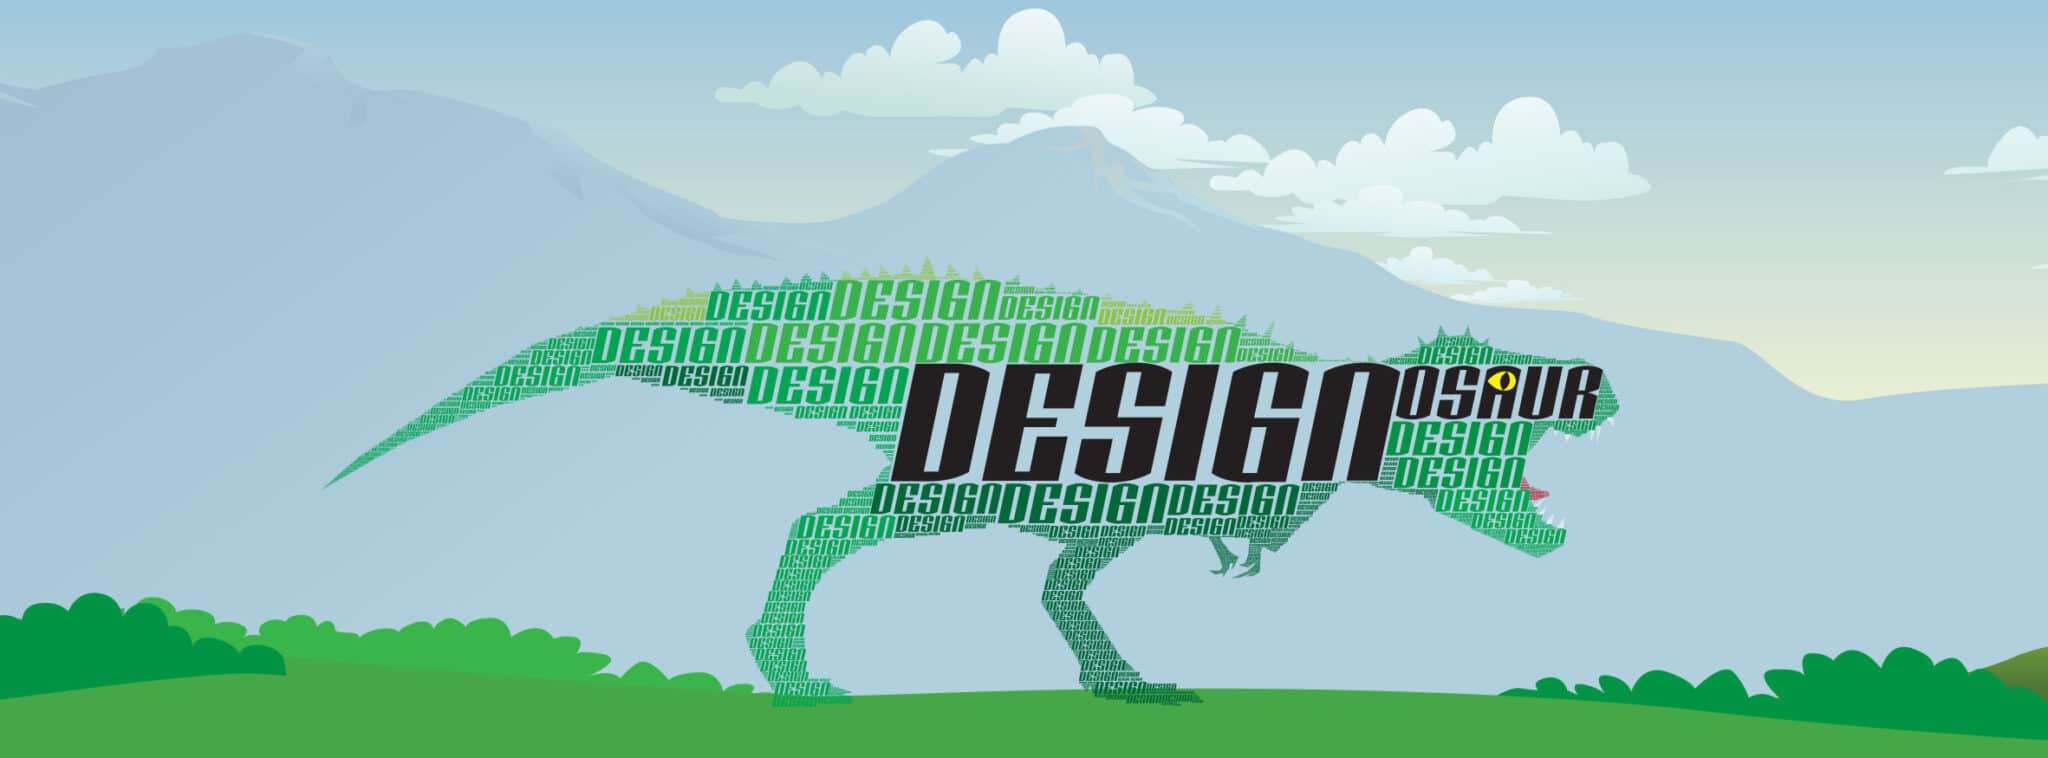 Designosaur Logo With Bg Website 2021